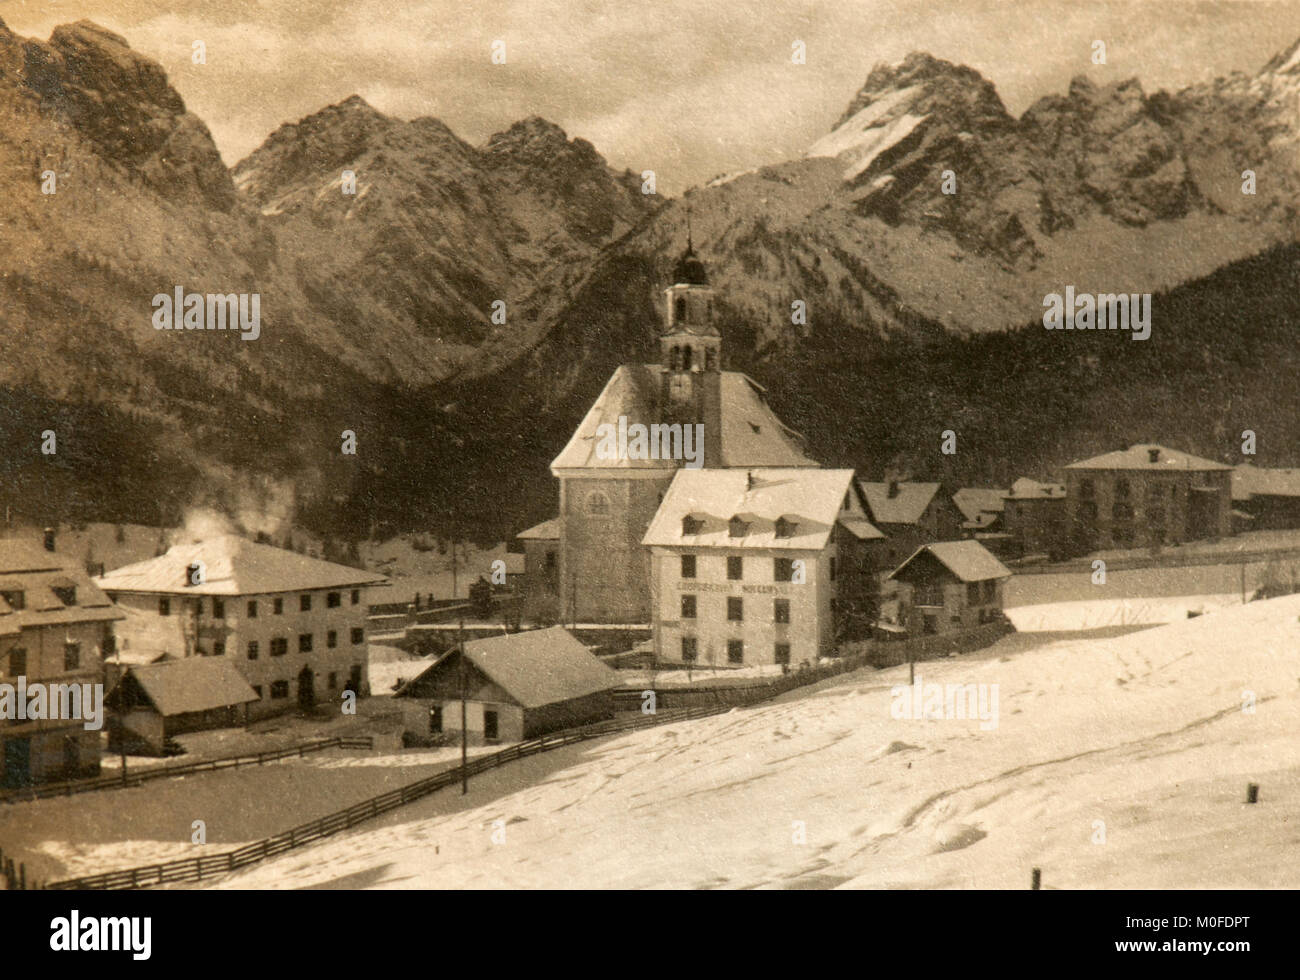 The village of Sappada in a picture taken in mid '20 (Italy) - Stock Image